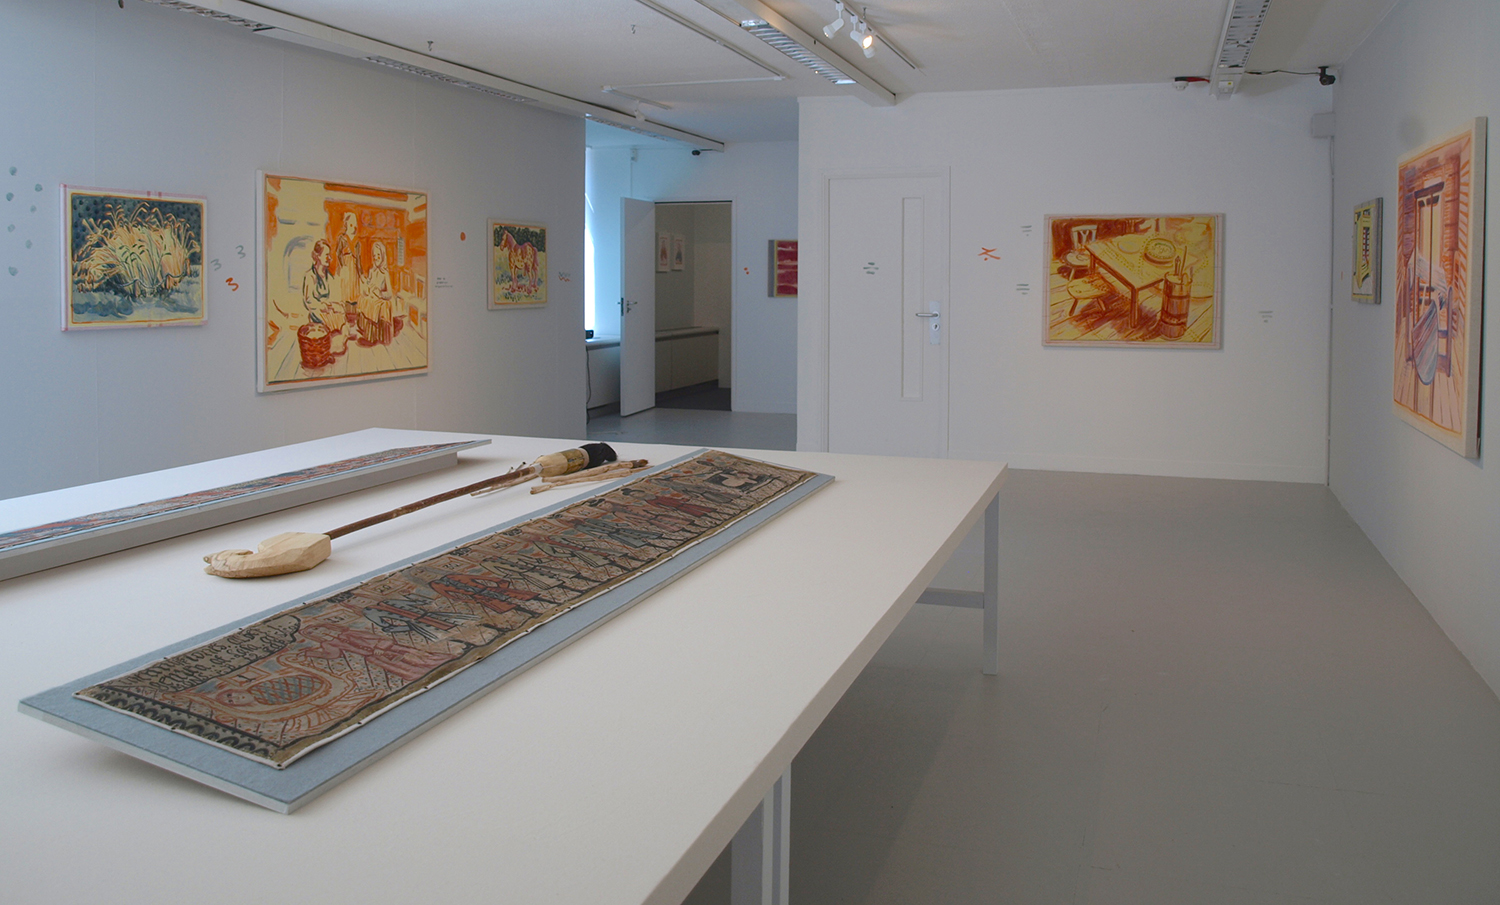 Installation shot with 'The Ages of Man' Nils Lundbergh (1719 - 1788), egg tempera on linen, collection of Hallands Art Museum.